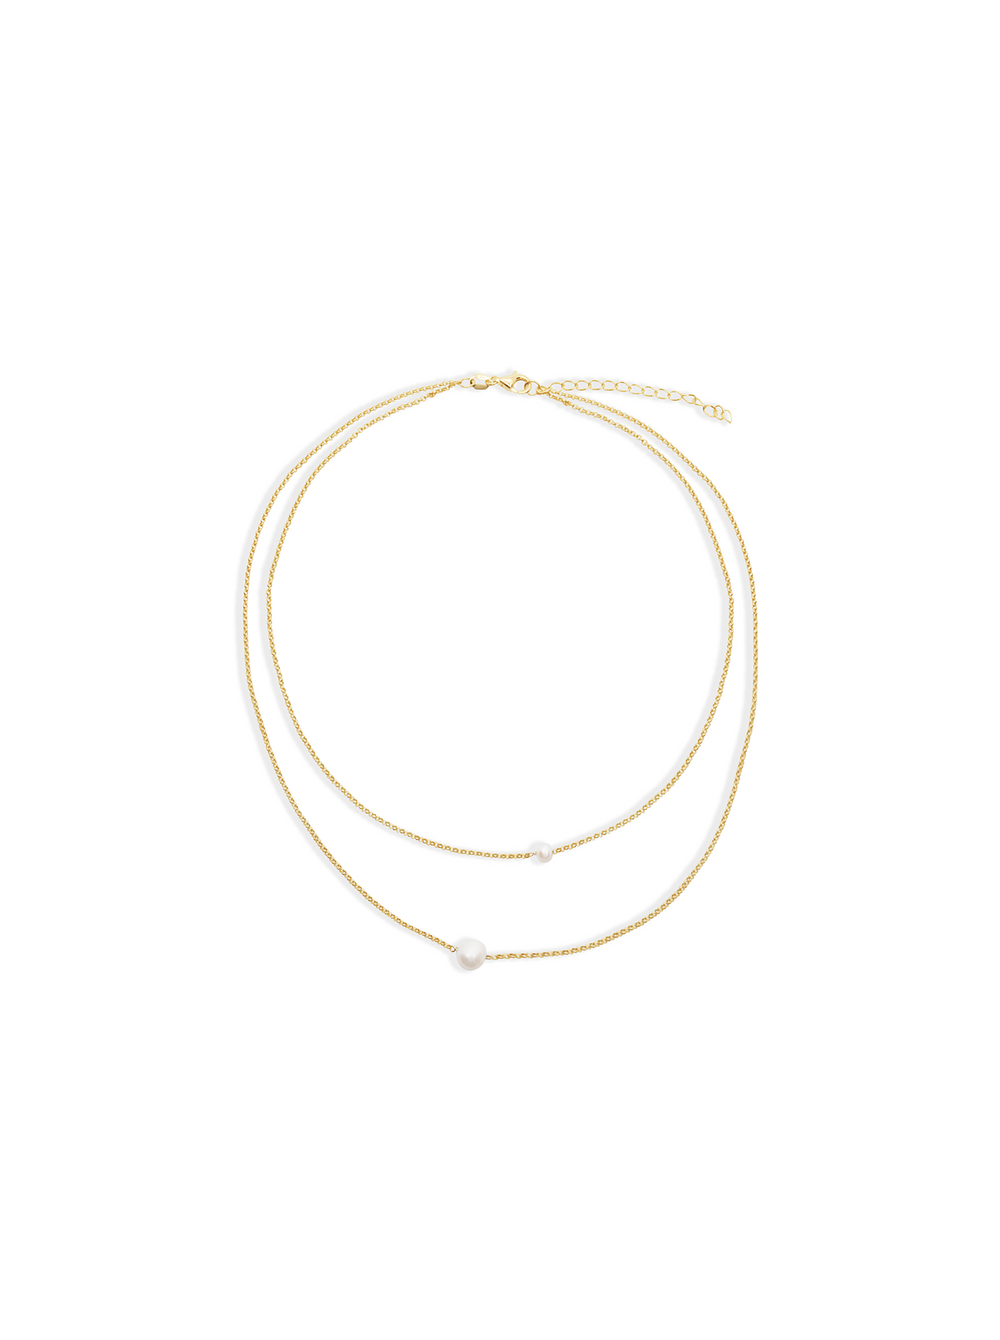 THE DOUBLE PEARL CHAIN COLLAR NECKLACE